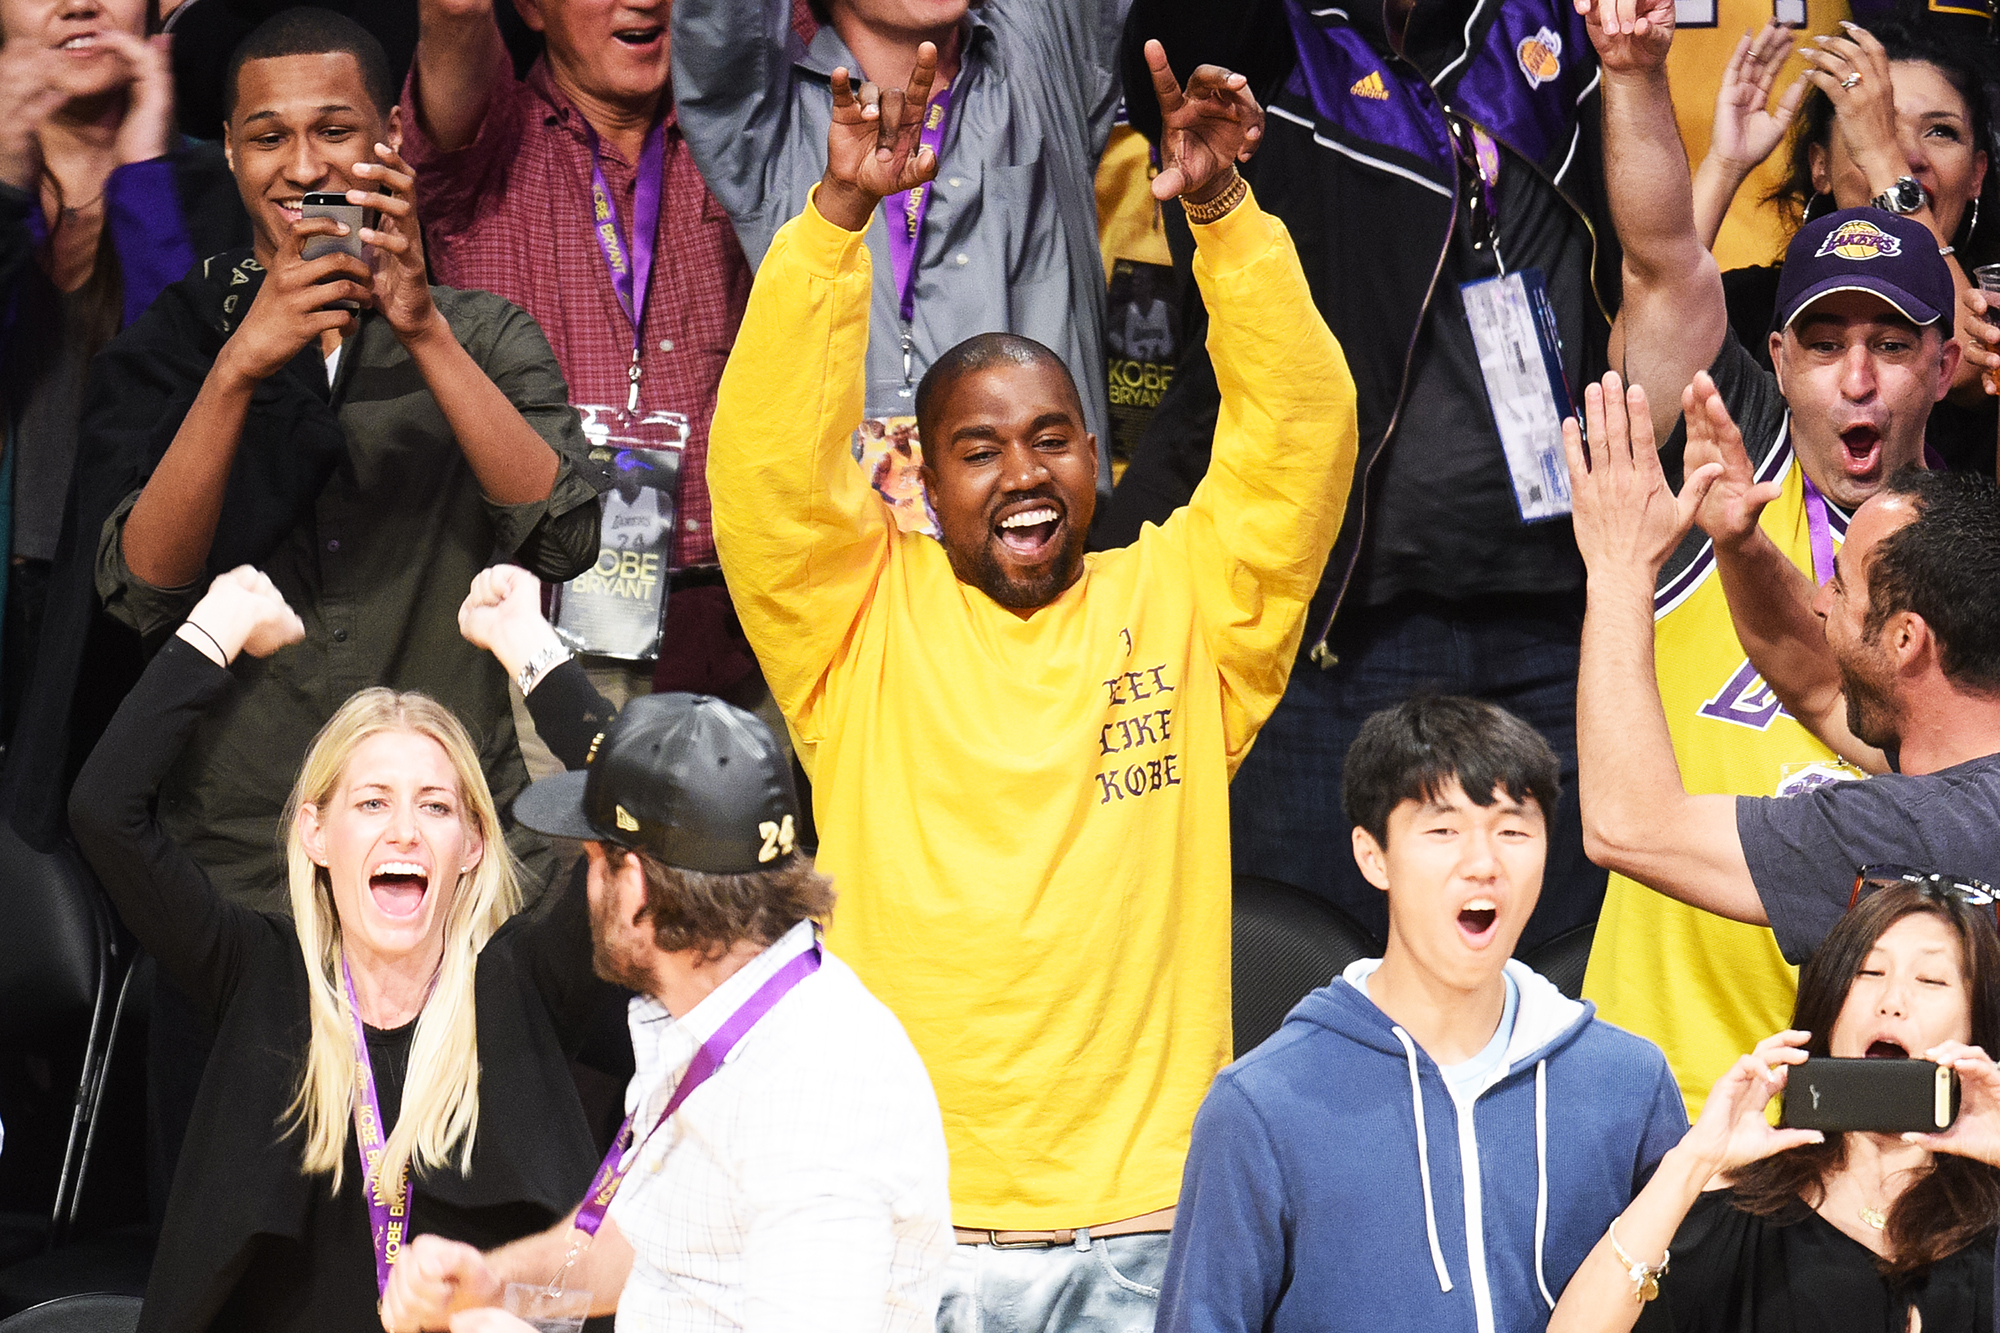 Kanye West attends Kobe Bryant's last game with the Los Angeles Lakers at Staples Center in Los Angeles, on April 13, 2016.